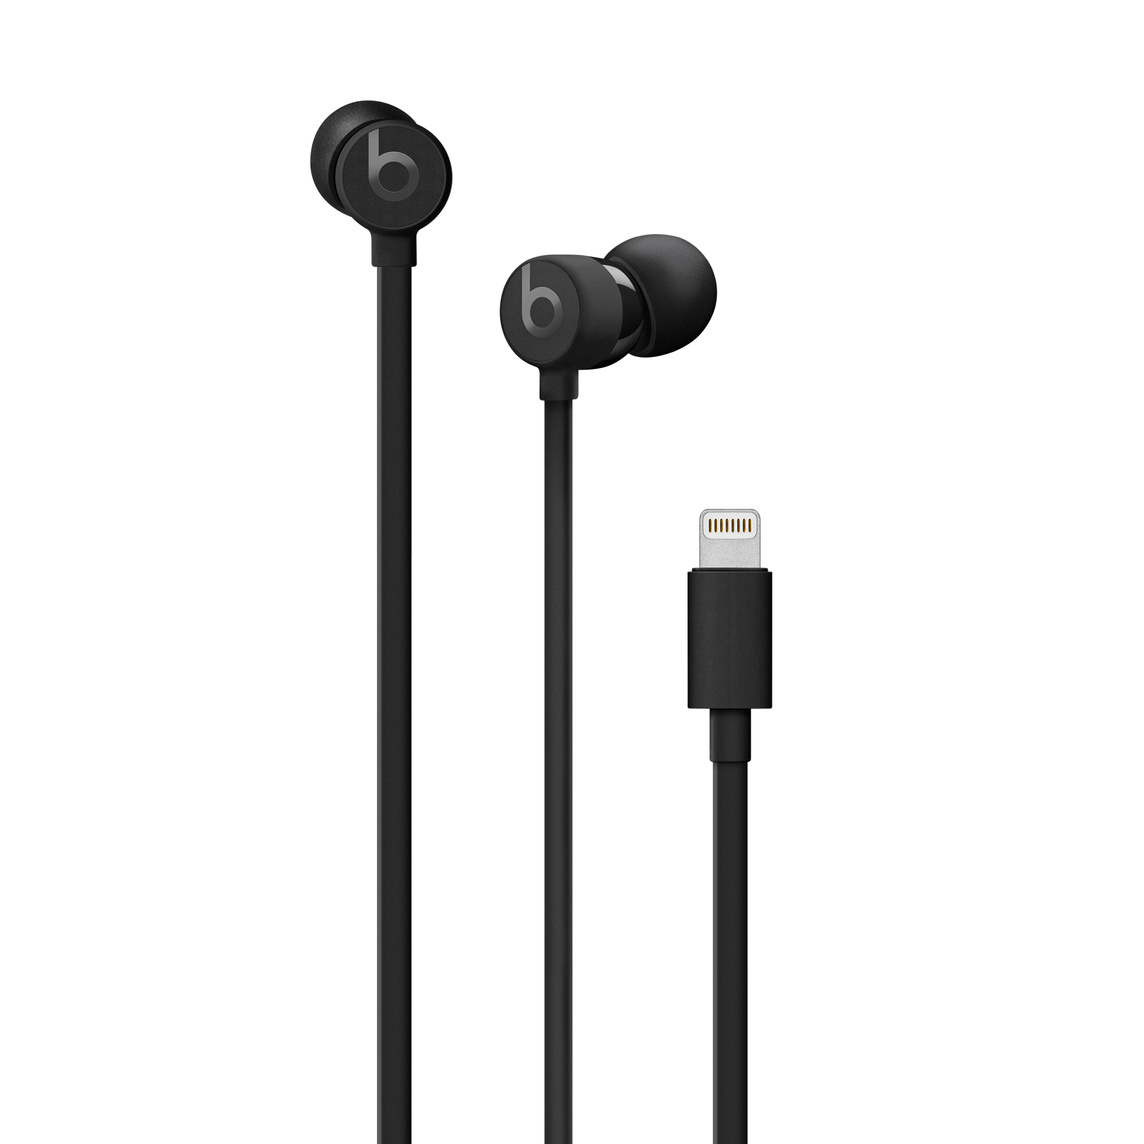 new product c152e 4af2d urBeats3 Earphones with Lightning Connector - Black